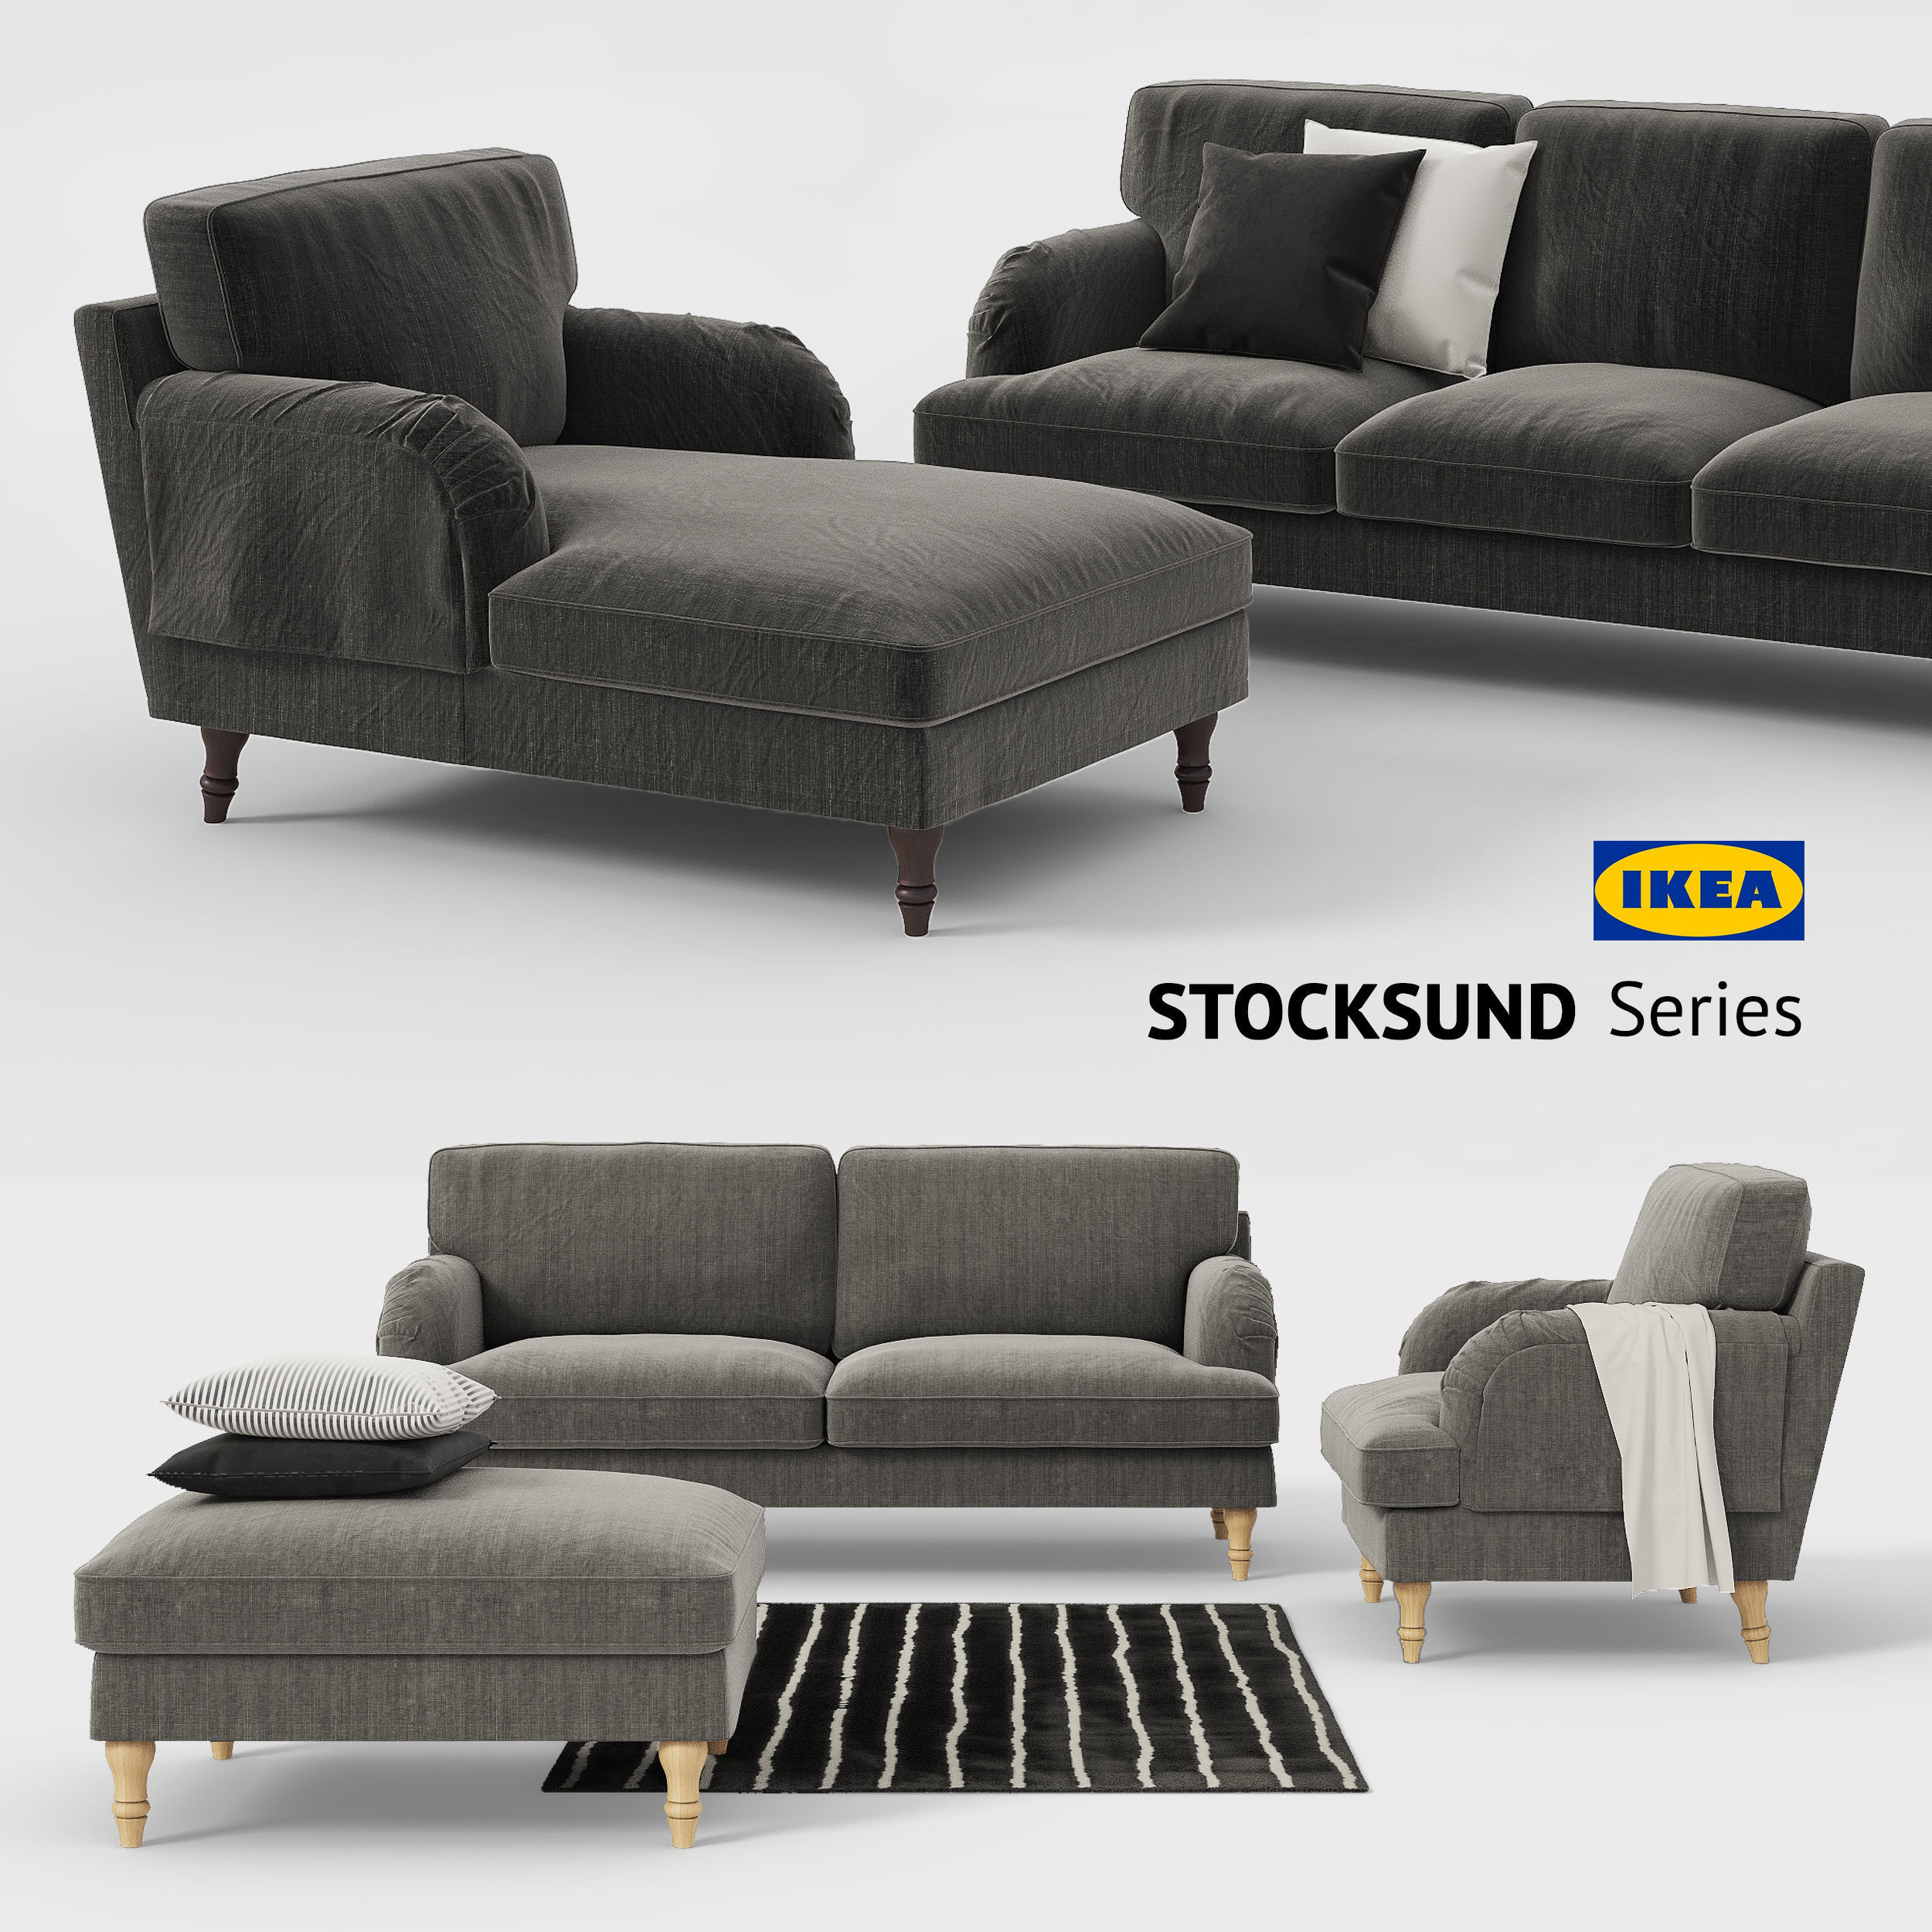 Ikea STOCKSUND sofa chair ottoman chaise sofa cover | 3D model